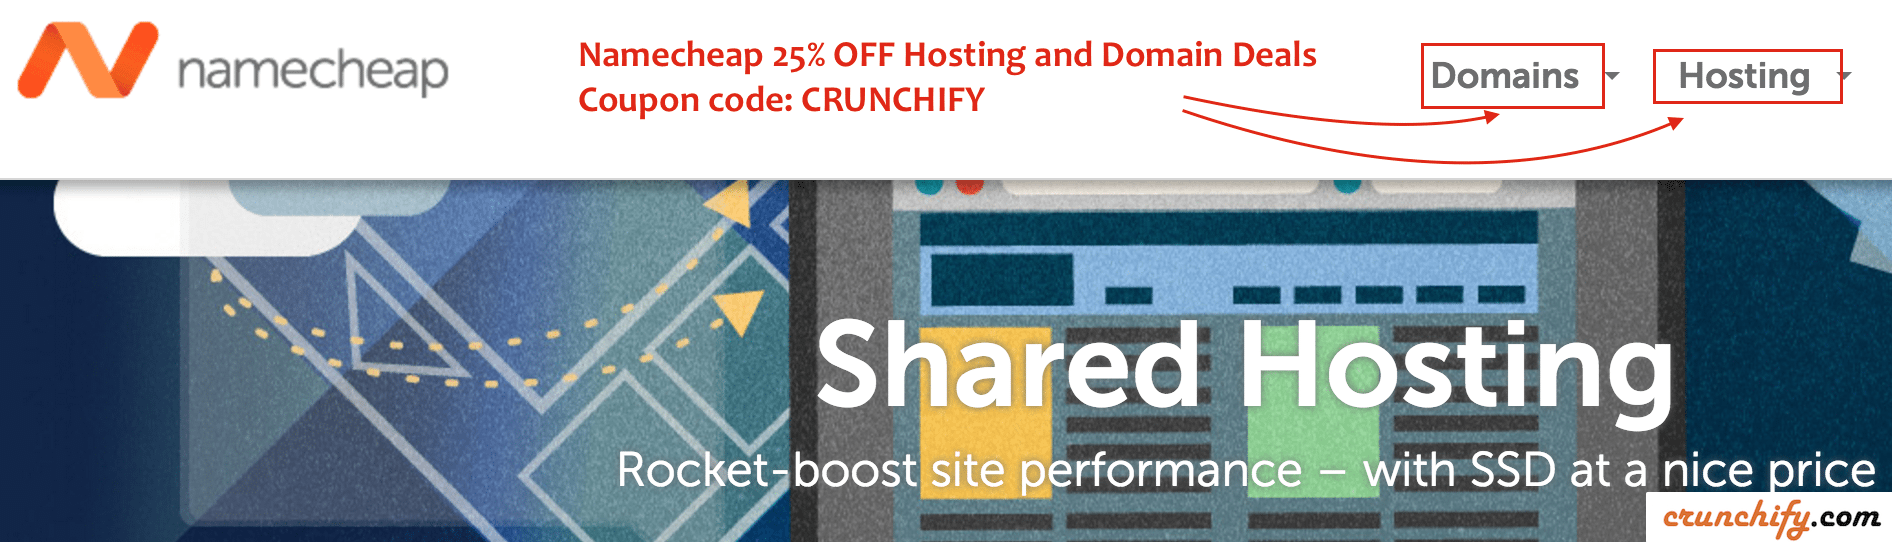 Namecheap Hosting and Domain Deals - Coupon code- CRUNCHIFY